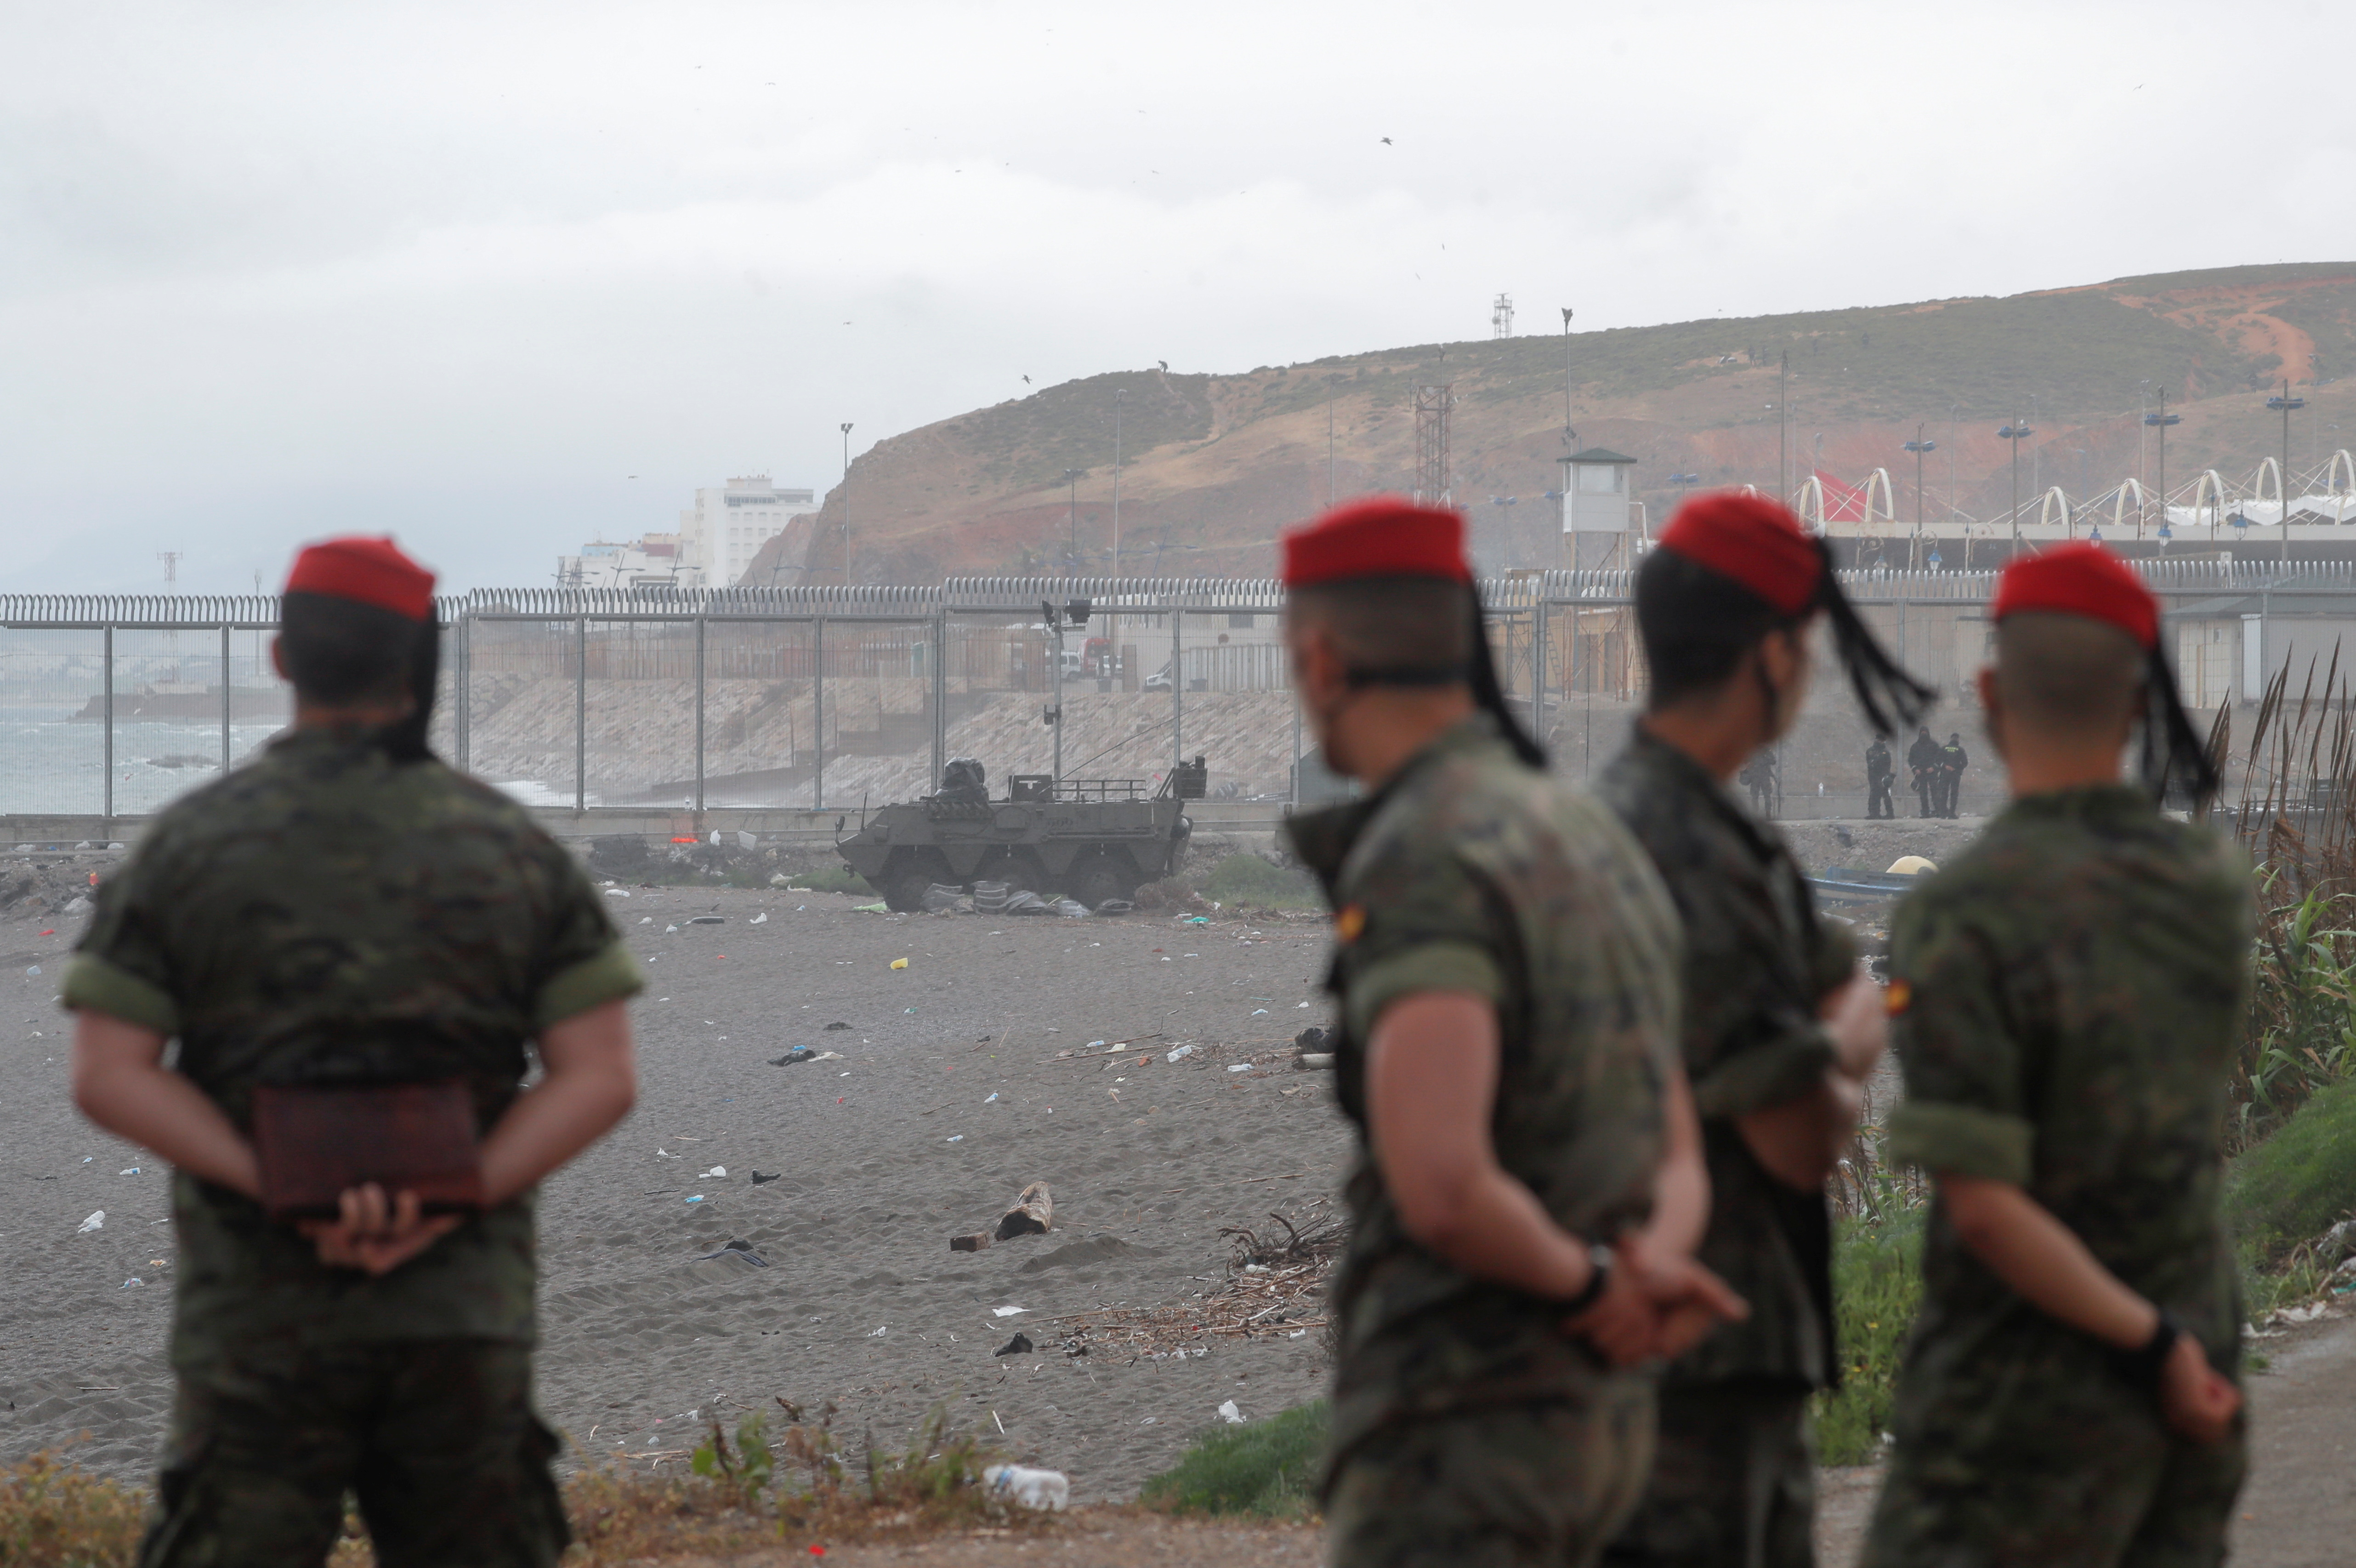 Spanish soldiers are seen at El Tarajal Beach near the Spanish-Moroccan border, after thousands of migrants swam across this border during the last days, in Ceuta, Spain, May 20, 2021. REUTERS/Jon Nazca